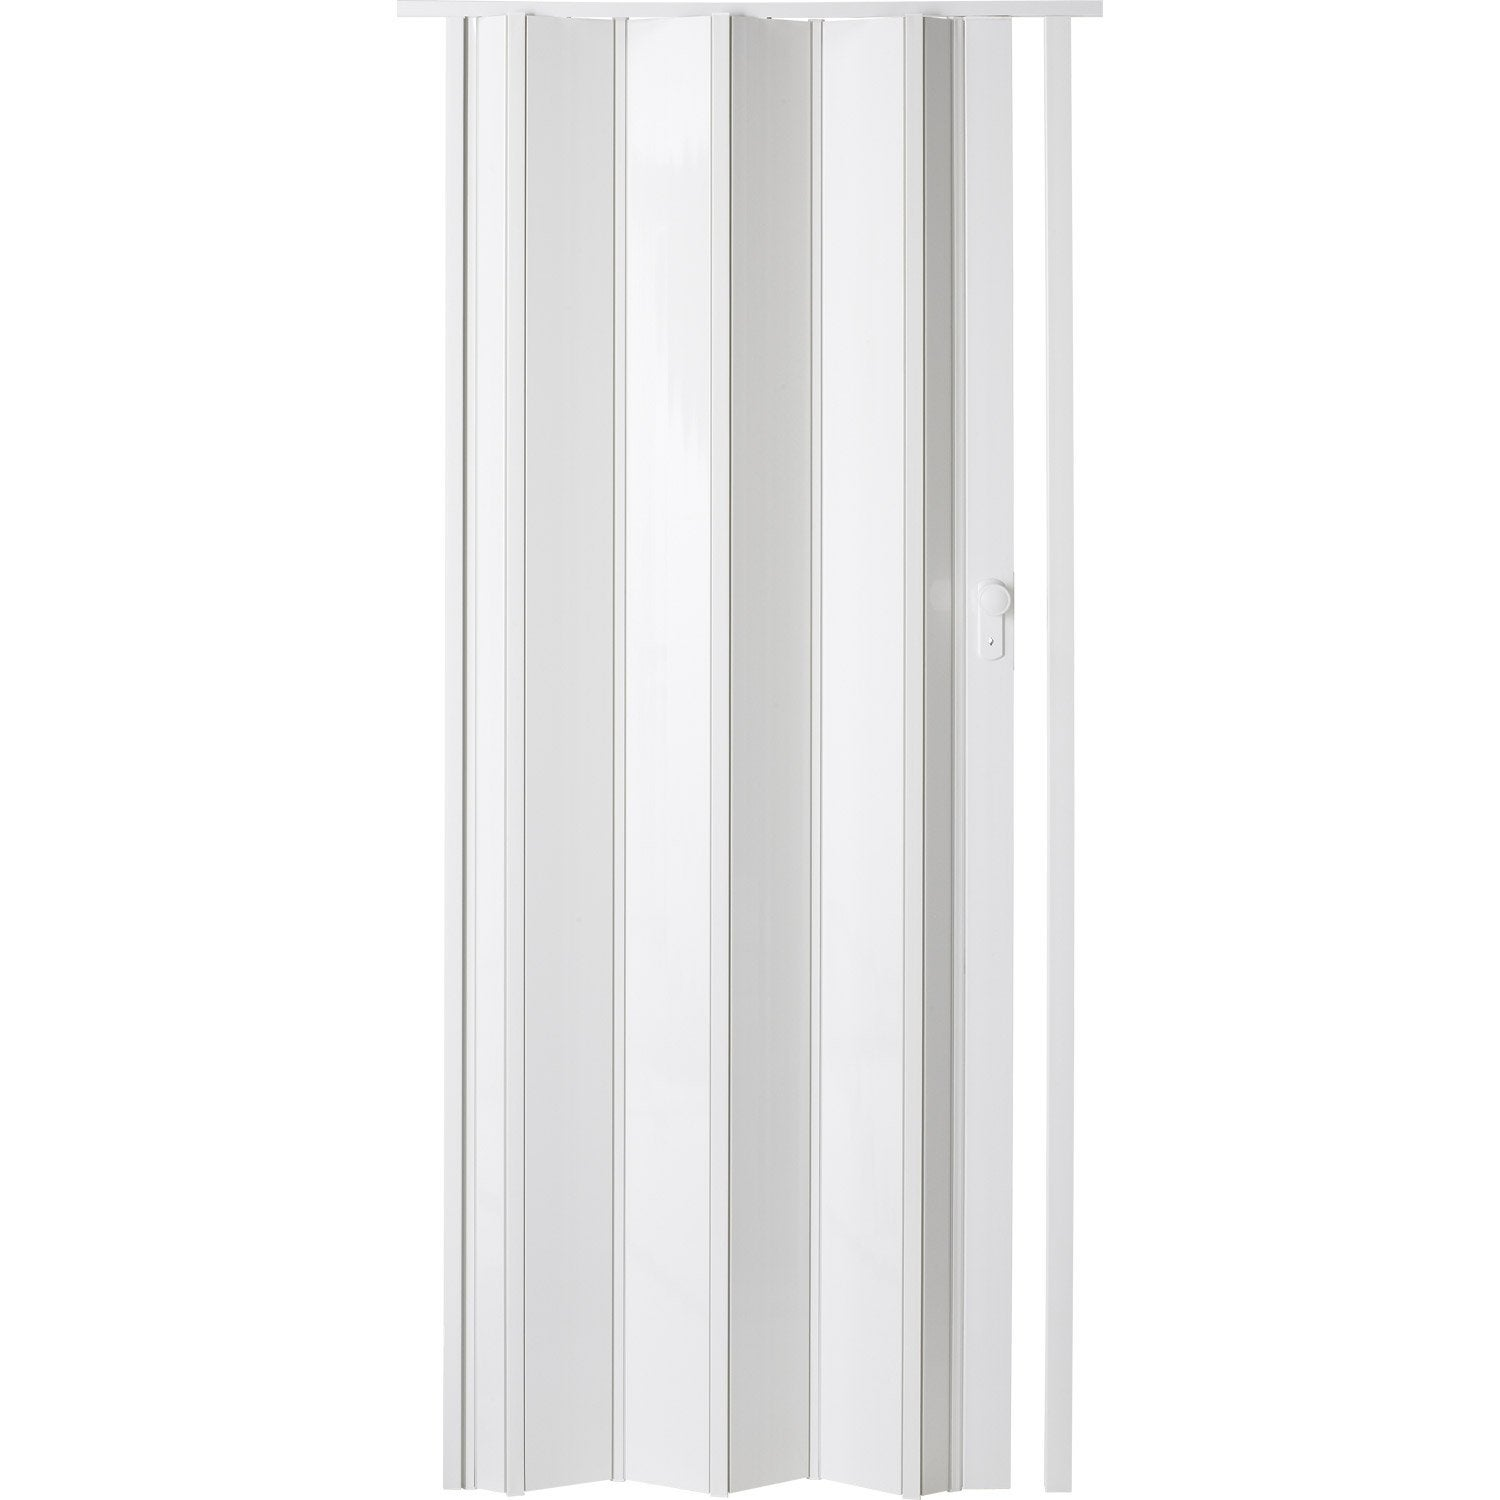 Porte extensible ibiza blanc brillant 205 x 85 cm pais for Porte extensible leroy merlin